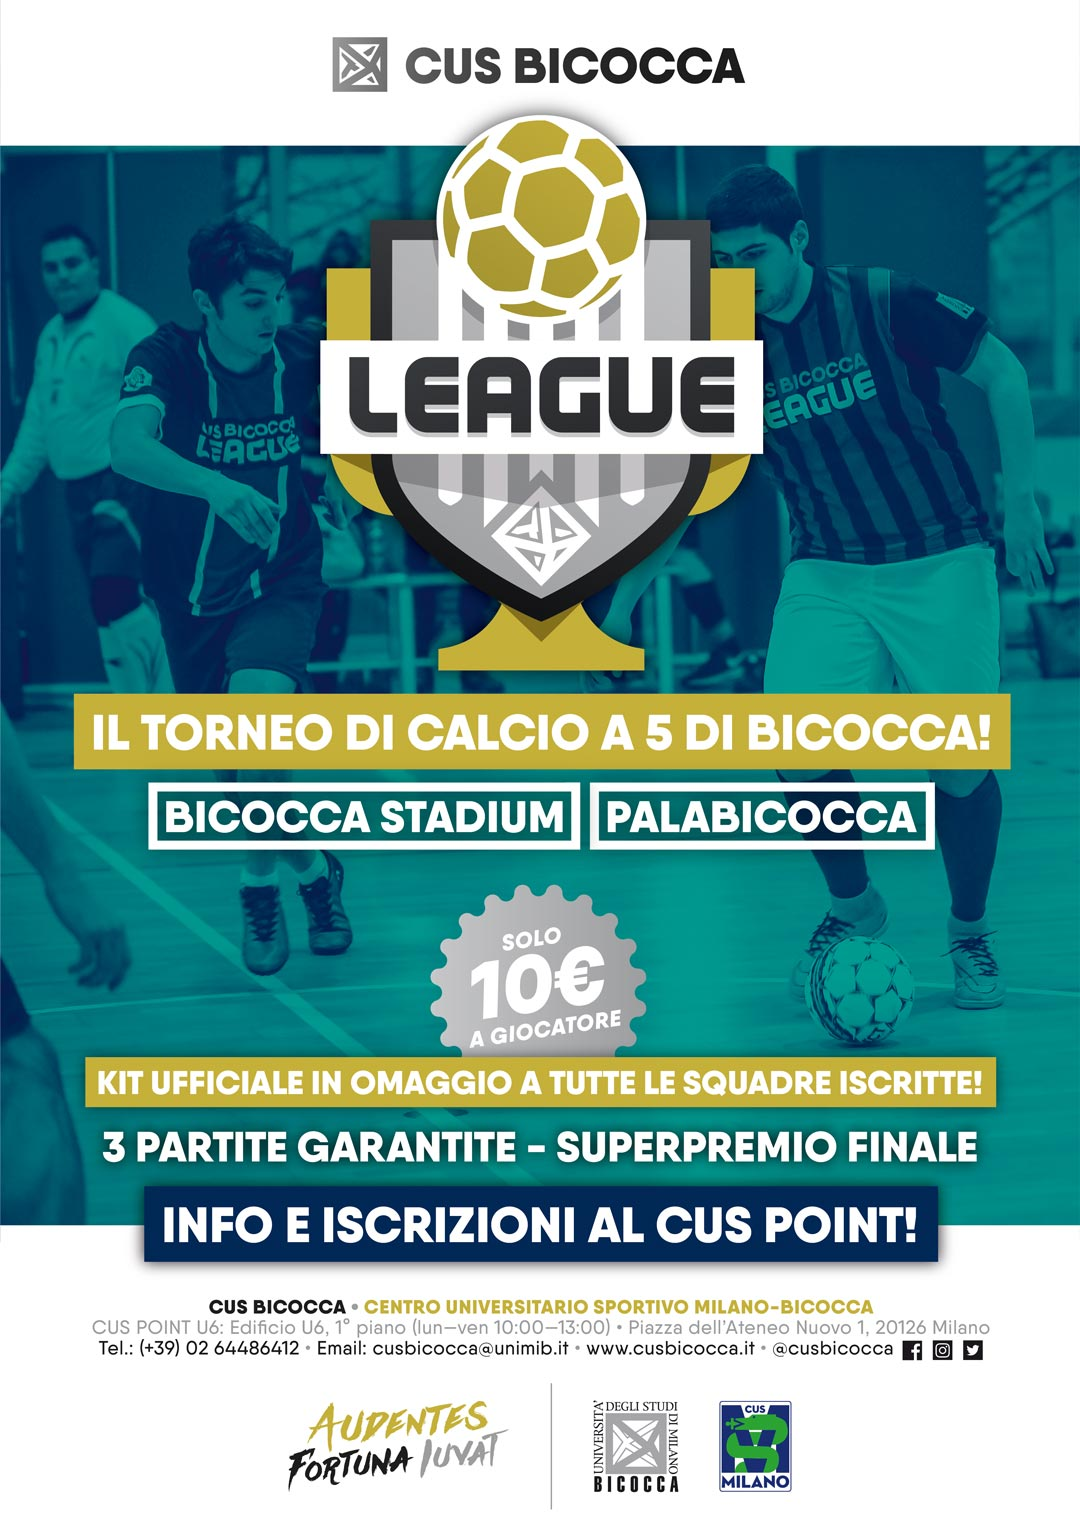 CUS Bicocca League 2019